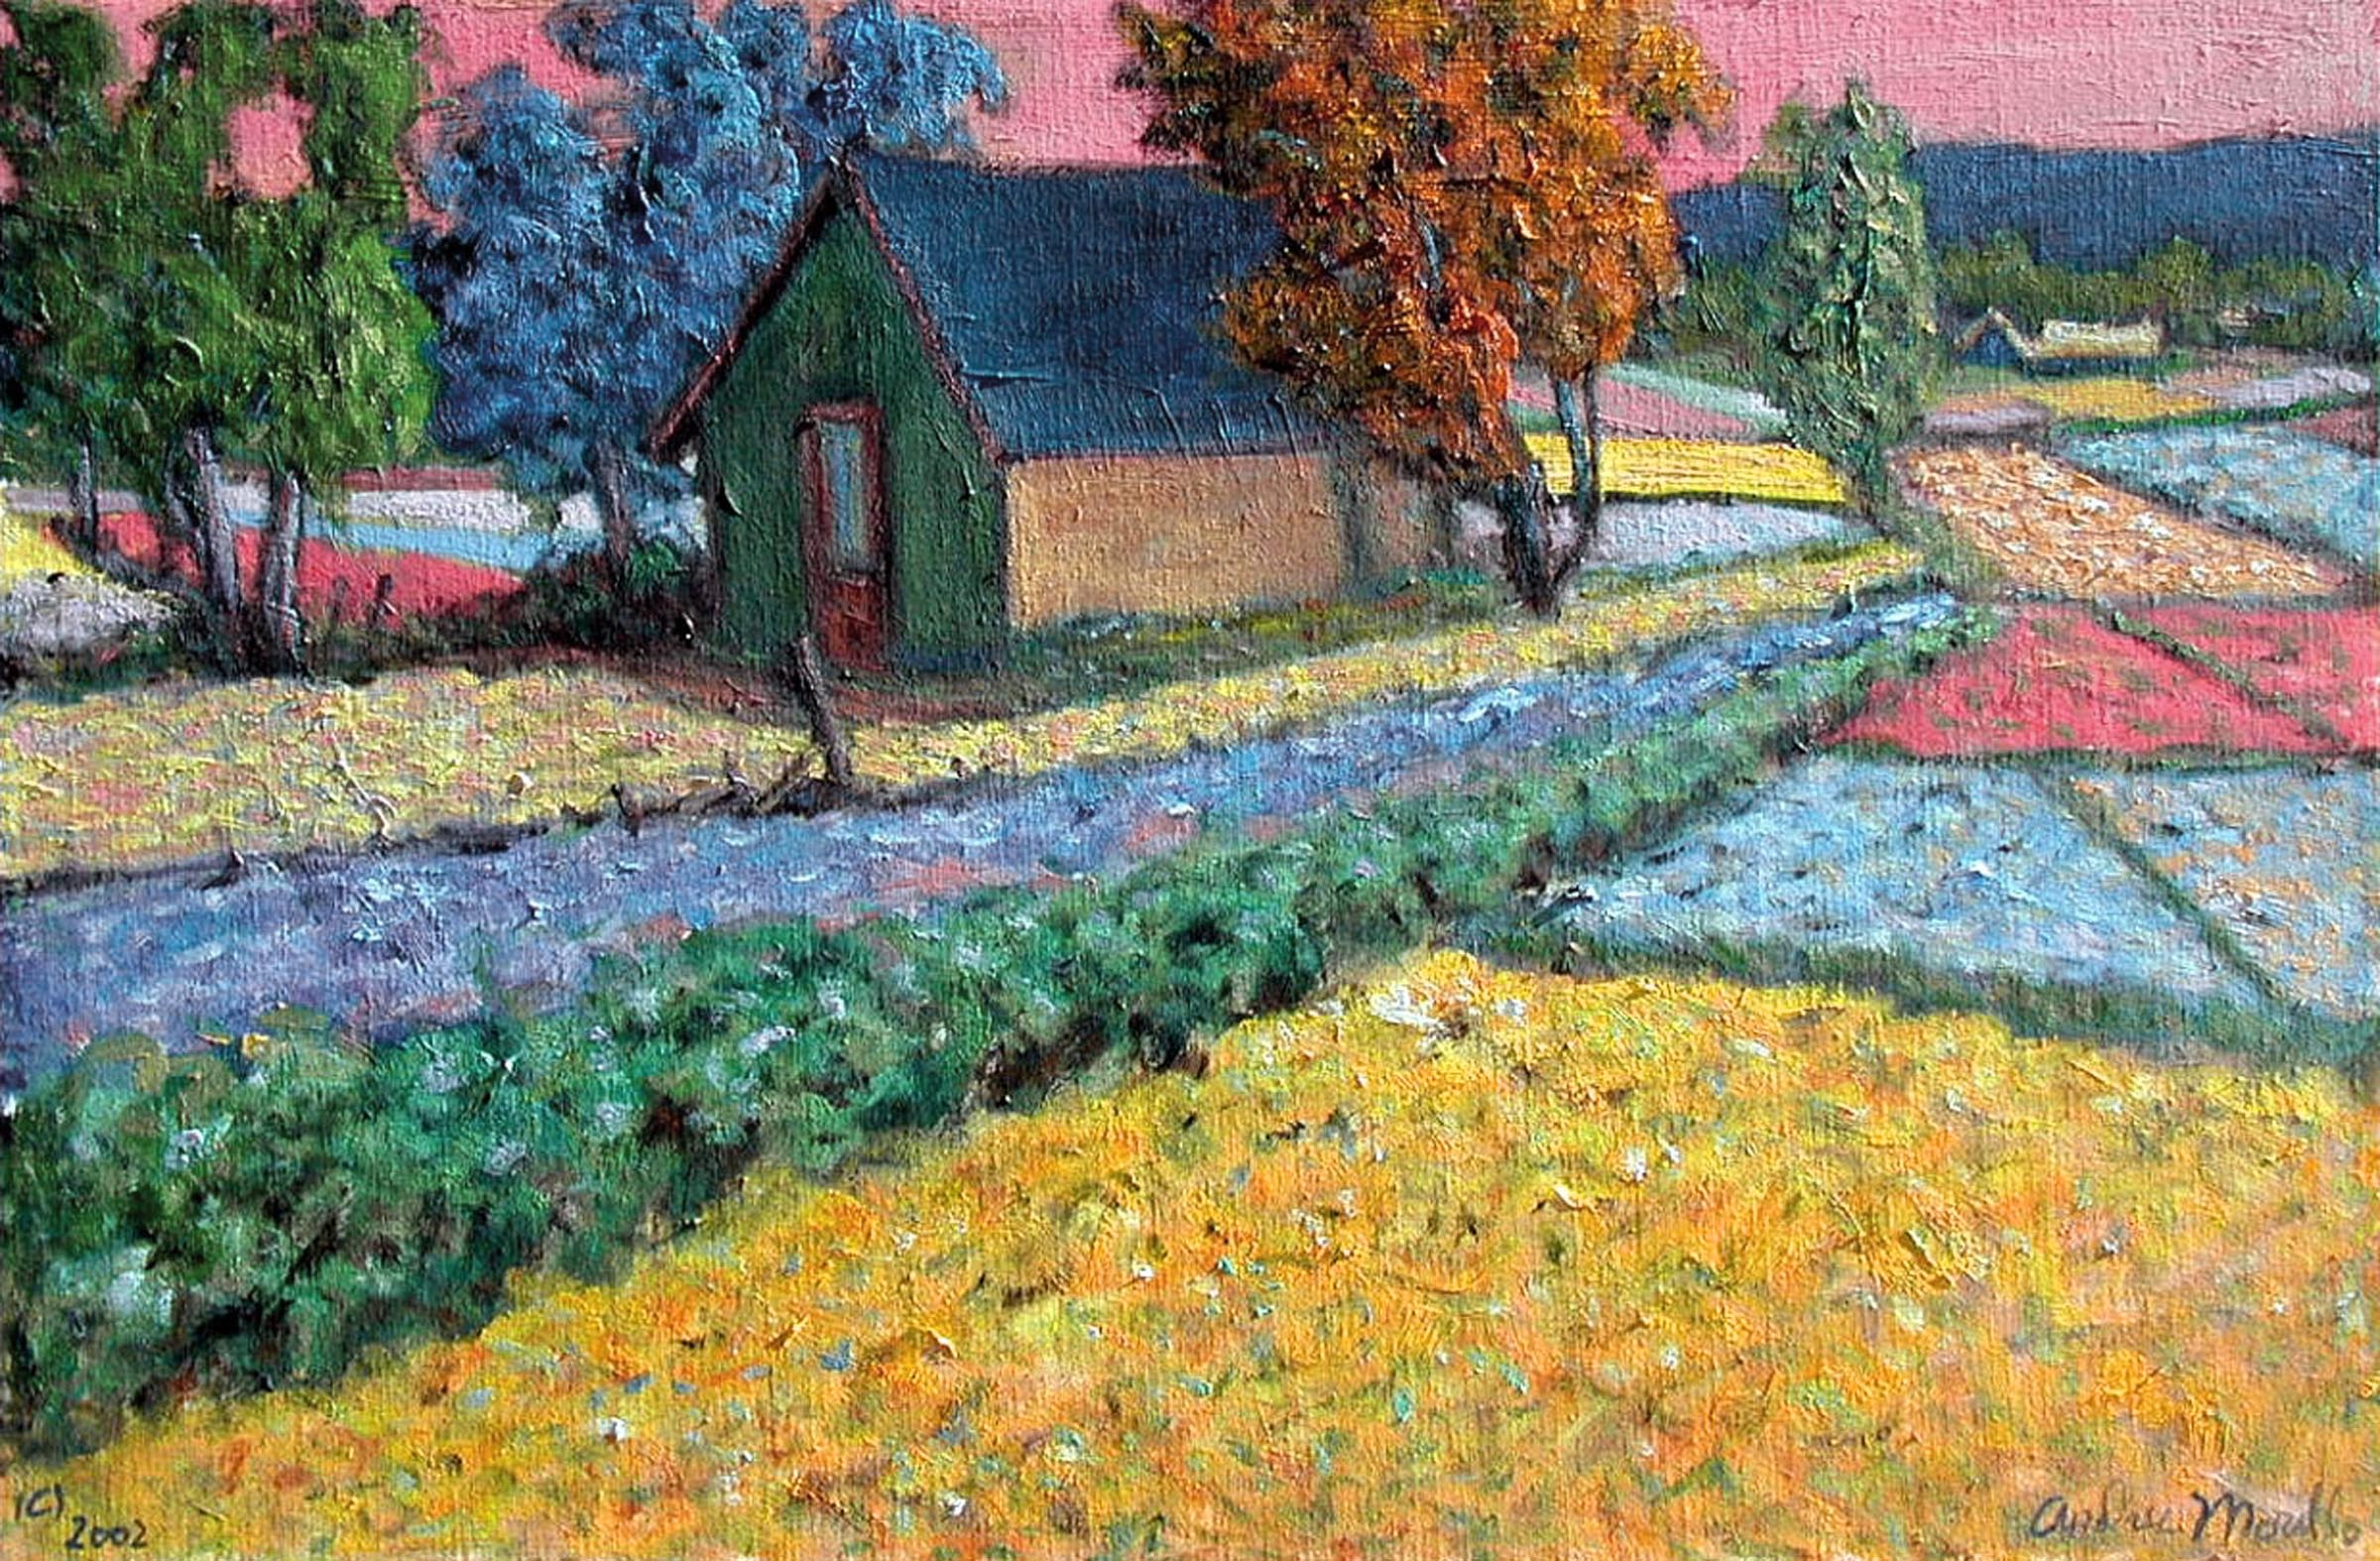 Barn with Flowering F... by  Andres  Morillo - Masterpiece Online